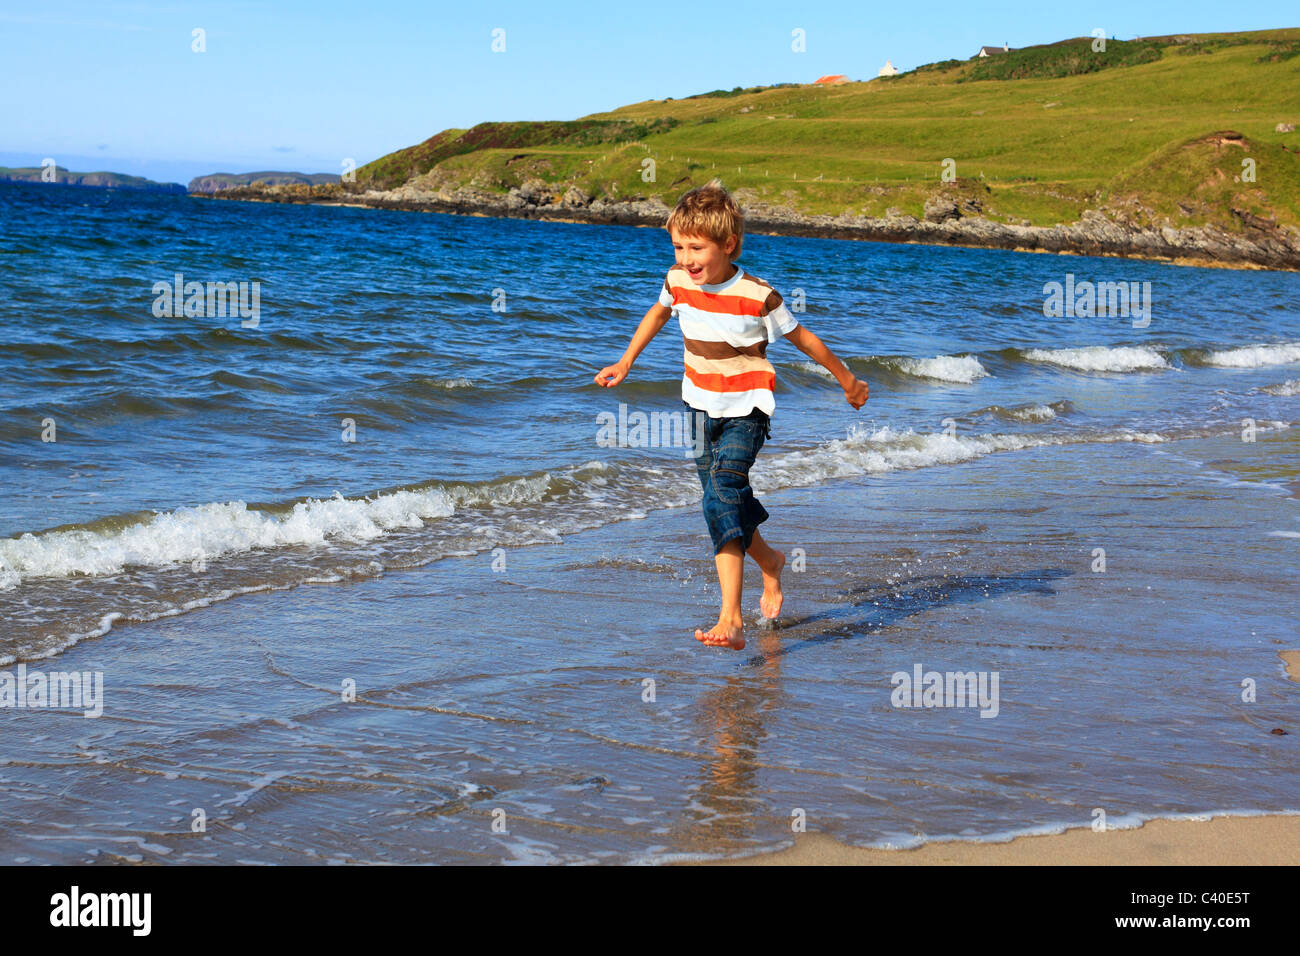 7, 7-year-old, activity, bathing suit, swimming trunks, bay, holidays, boy, child, boy, coast, person, nature, North, - Stock Image